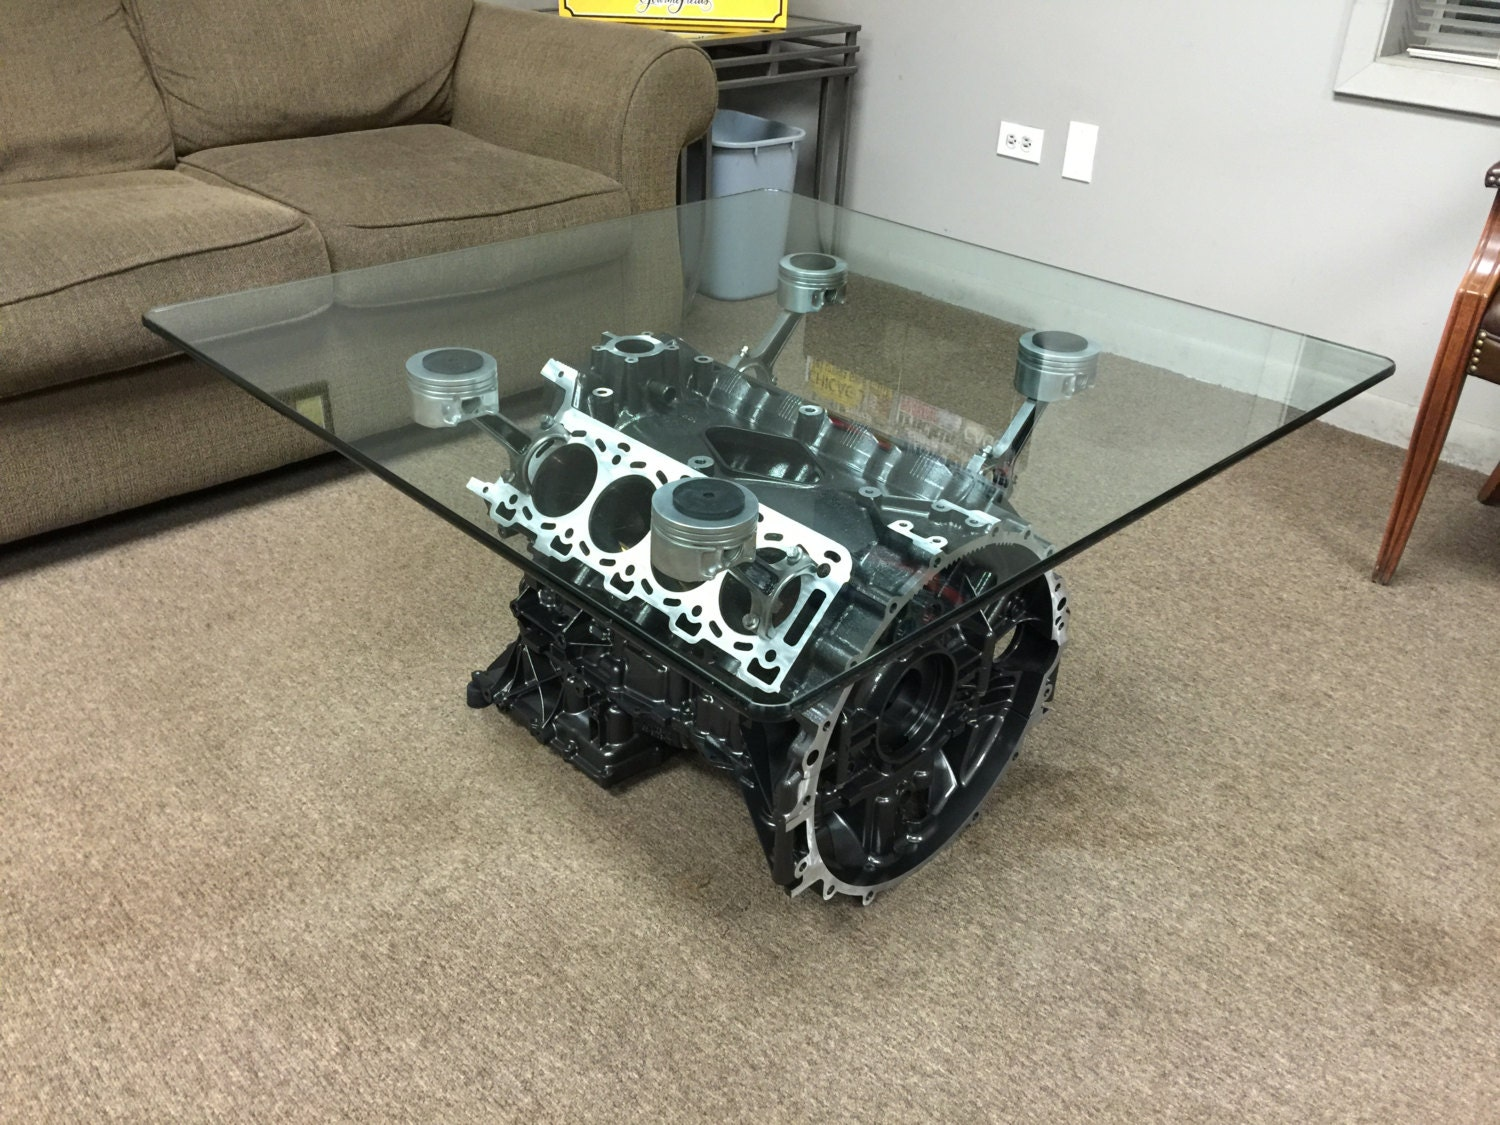 v8 engine block coffee table. Black Bedroom Furniture Sets. Home Design Ideas